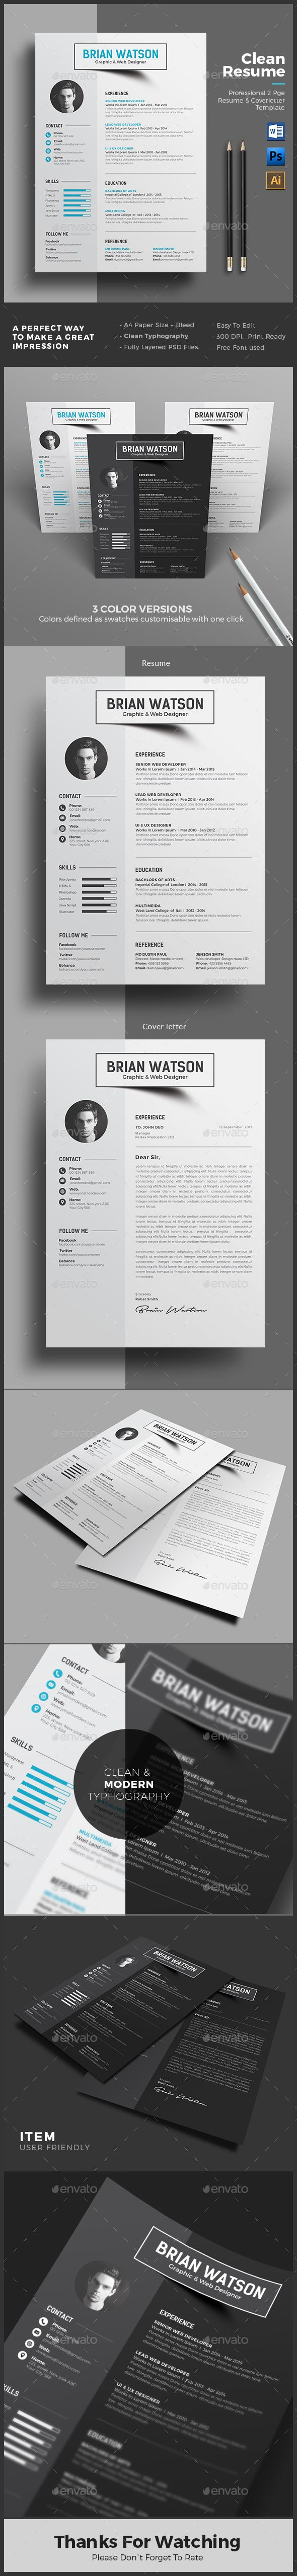 Resume 11 best CV formats images on